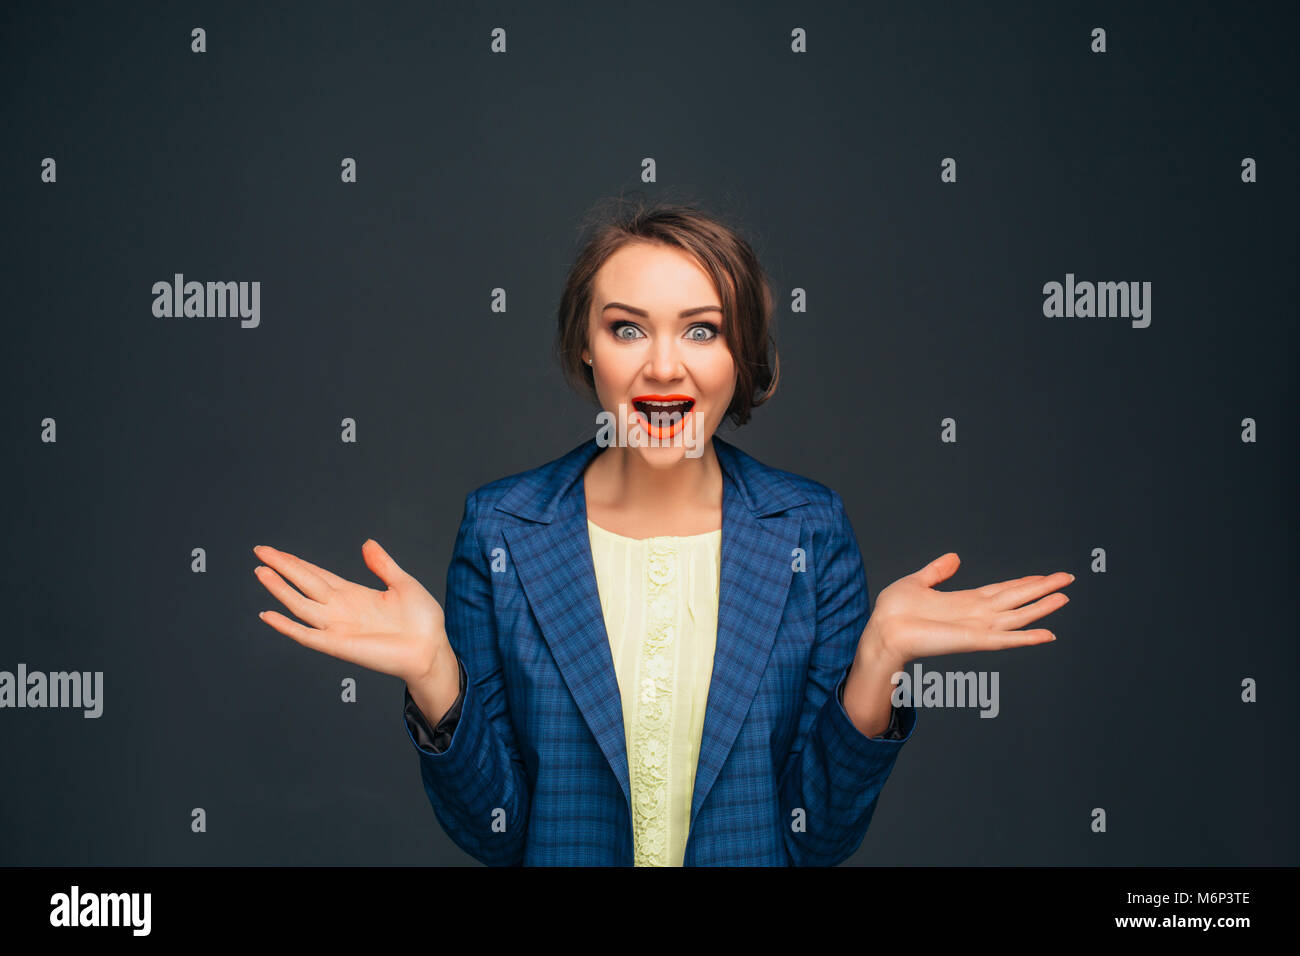 business woman - amazing facial expression - Stock Image